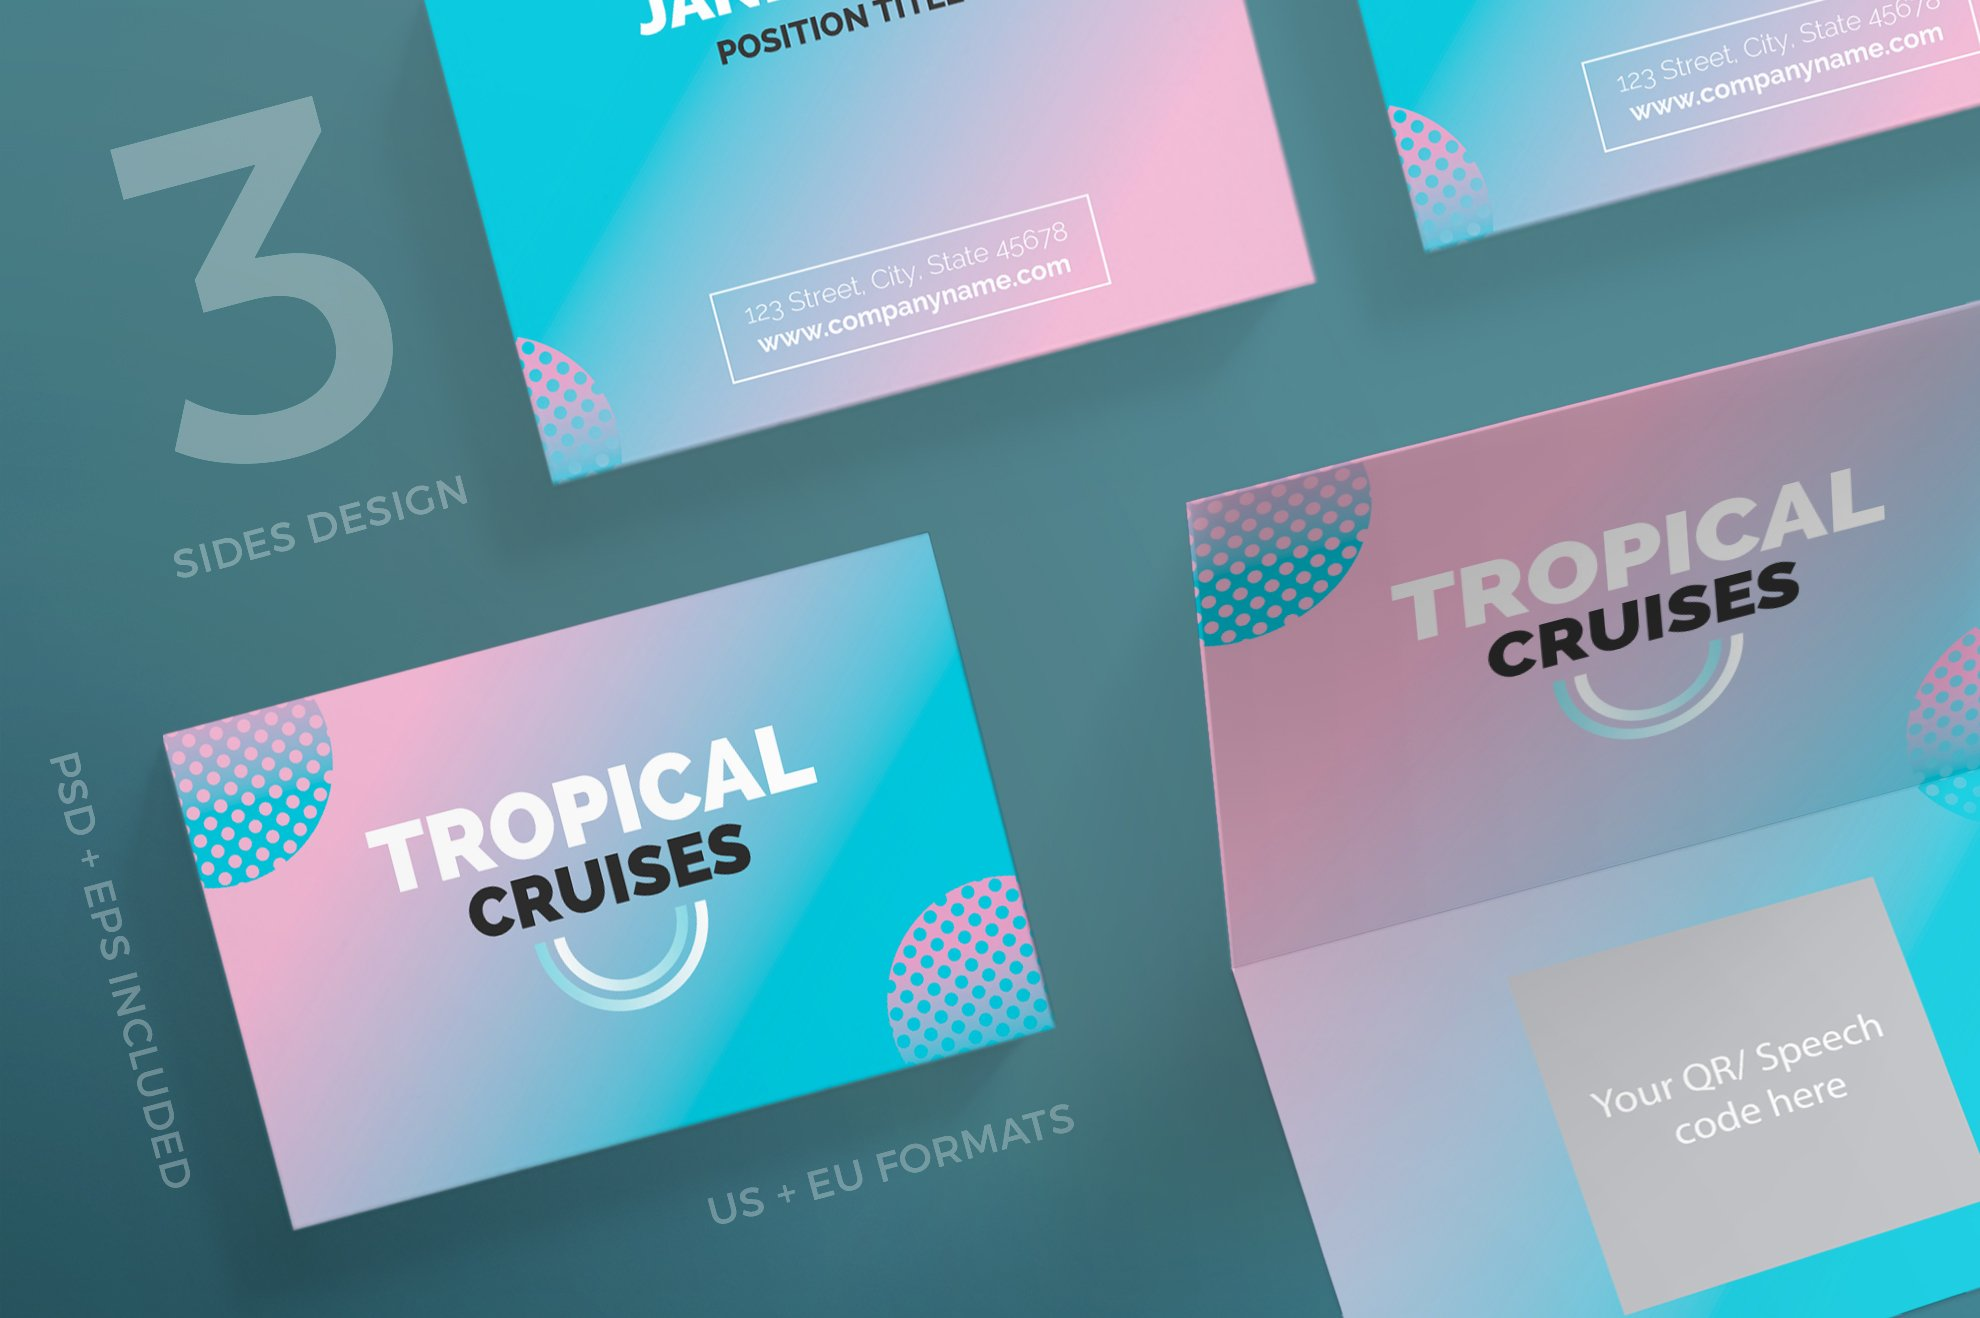 Housekeeper business cards images free business cards 123 business cards gallery free business cards business cards tropical cruises business card templates business cards magicingreecefo Gallery